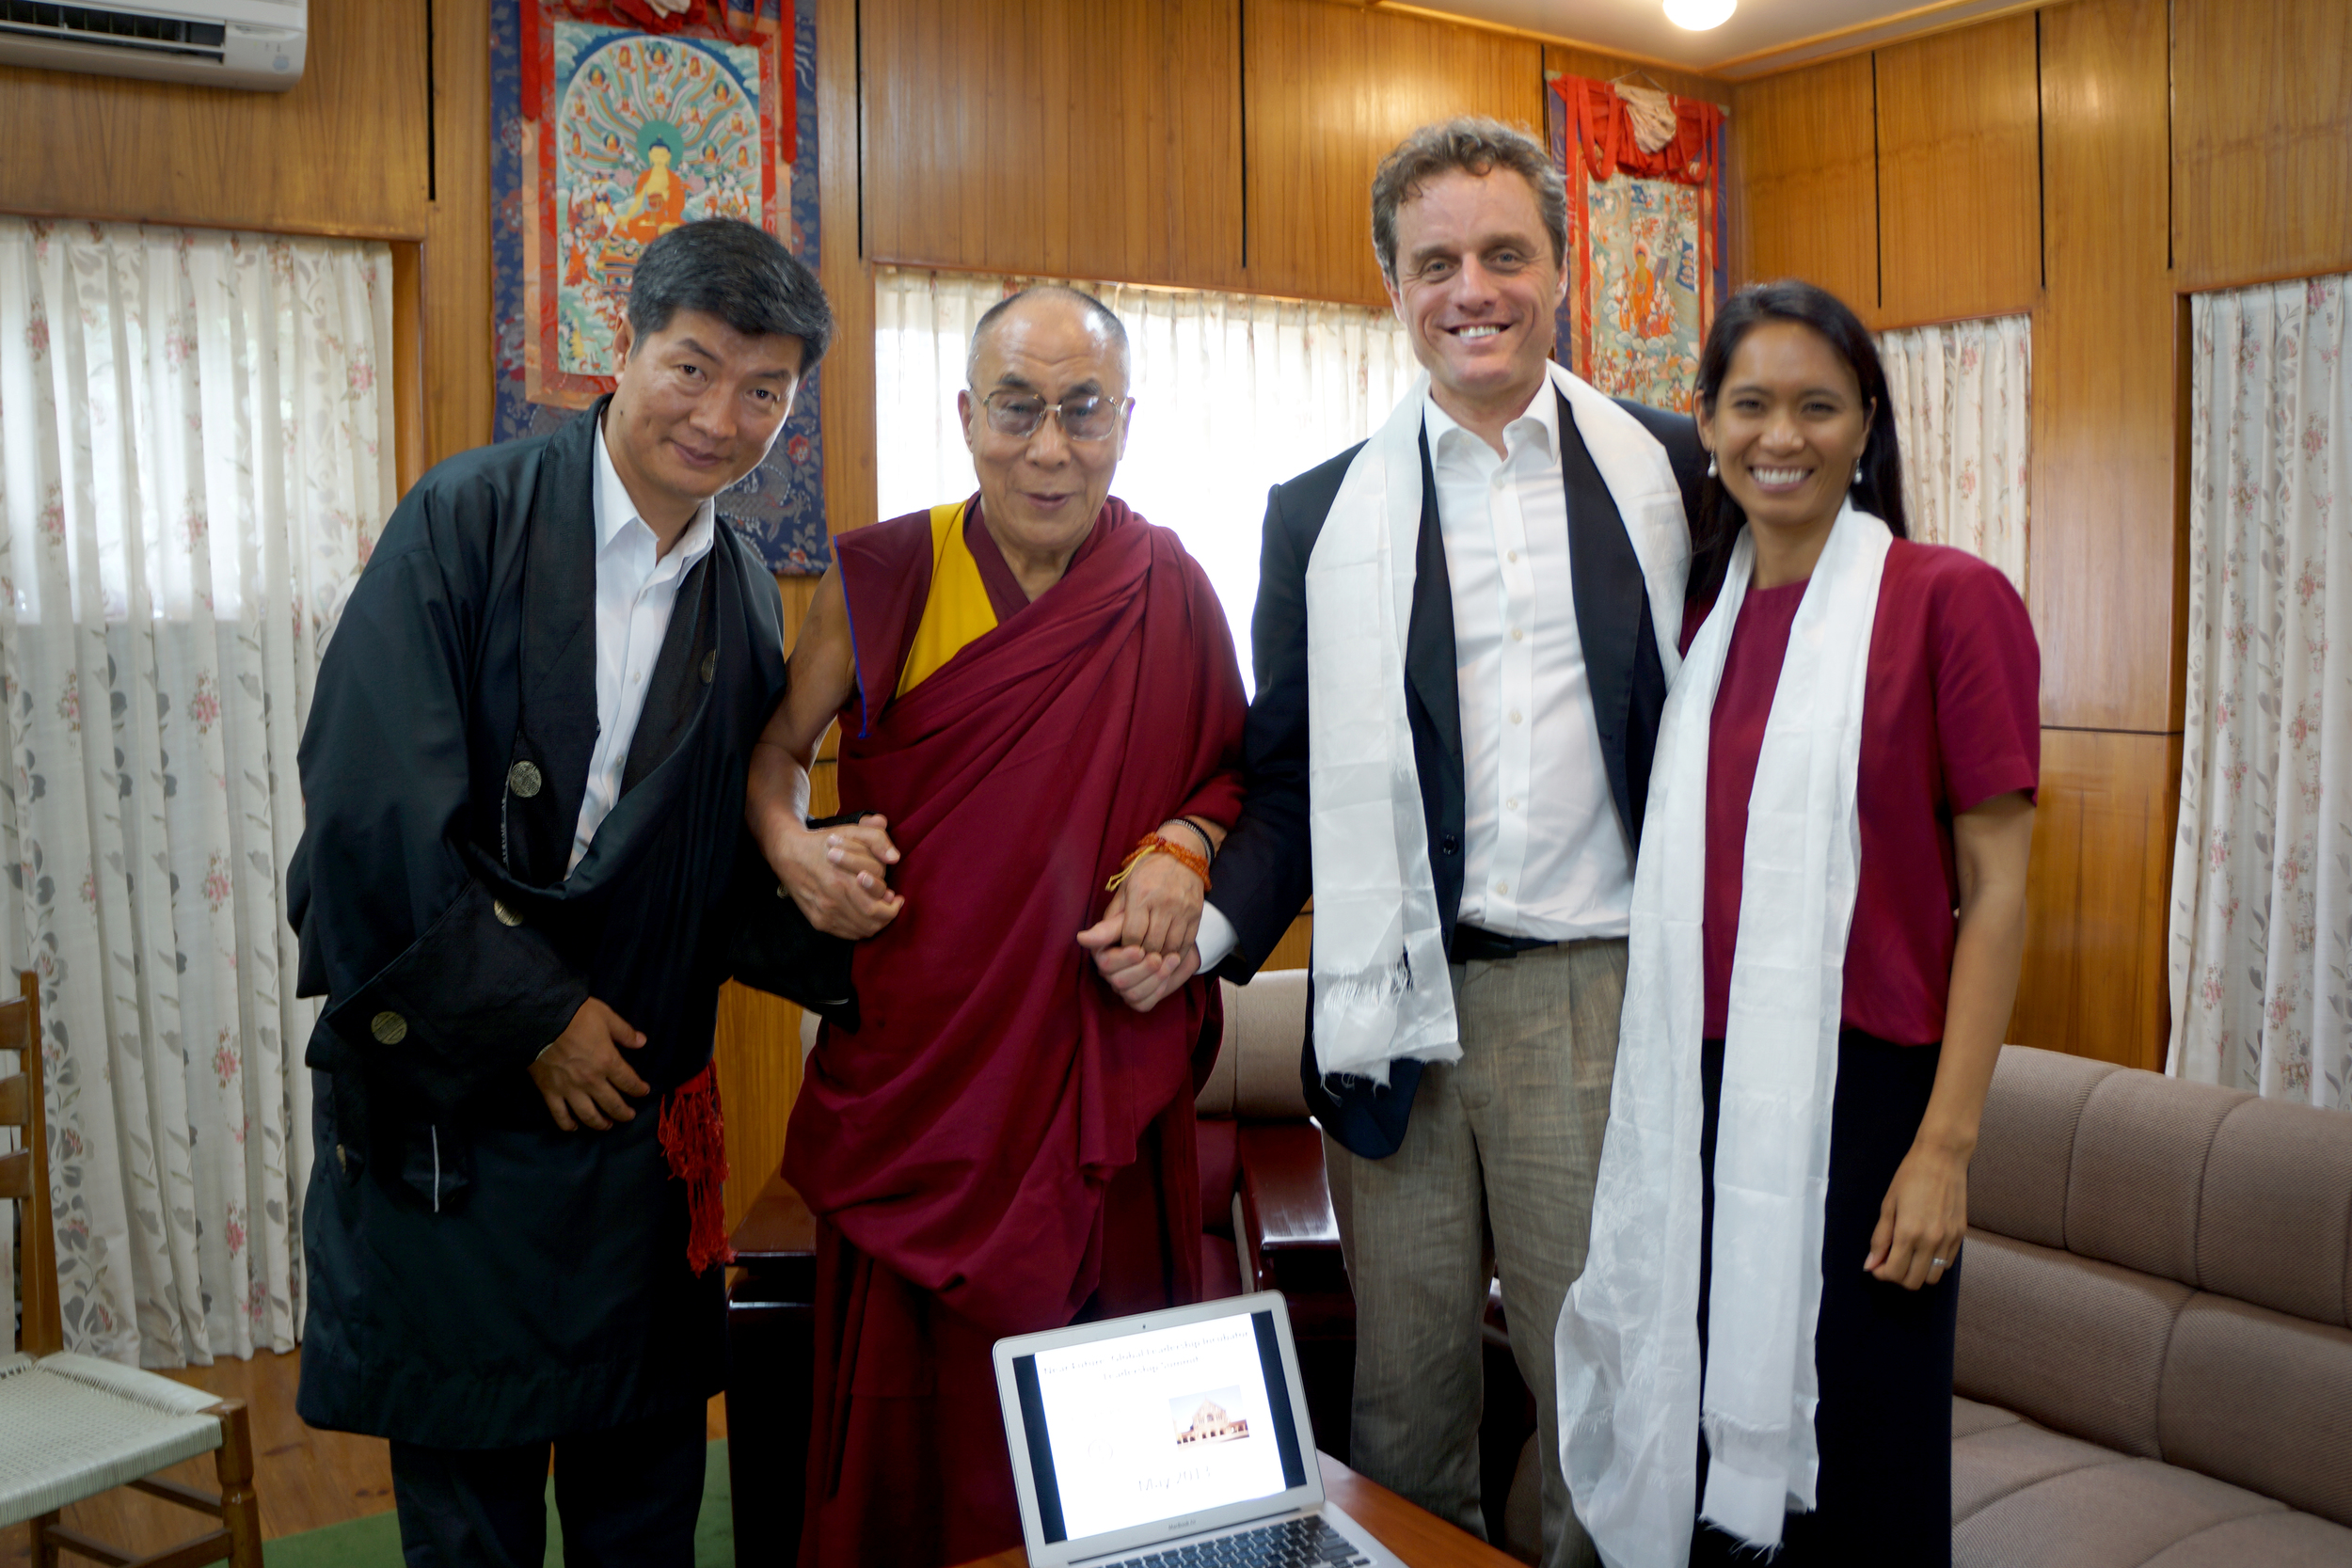 Sikyong Lobsang Sangay (left), His Holiness the Dalia Lama (center left), Dr. Michael McCullough (center right), and Ana Rowena McCullough (right) stand for a picture